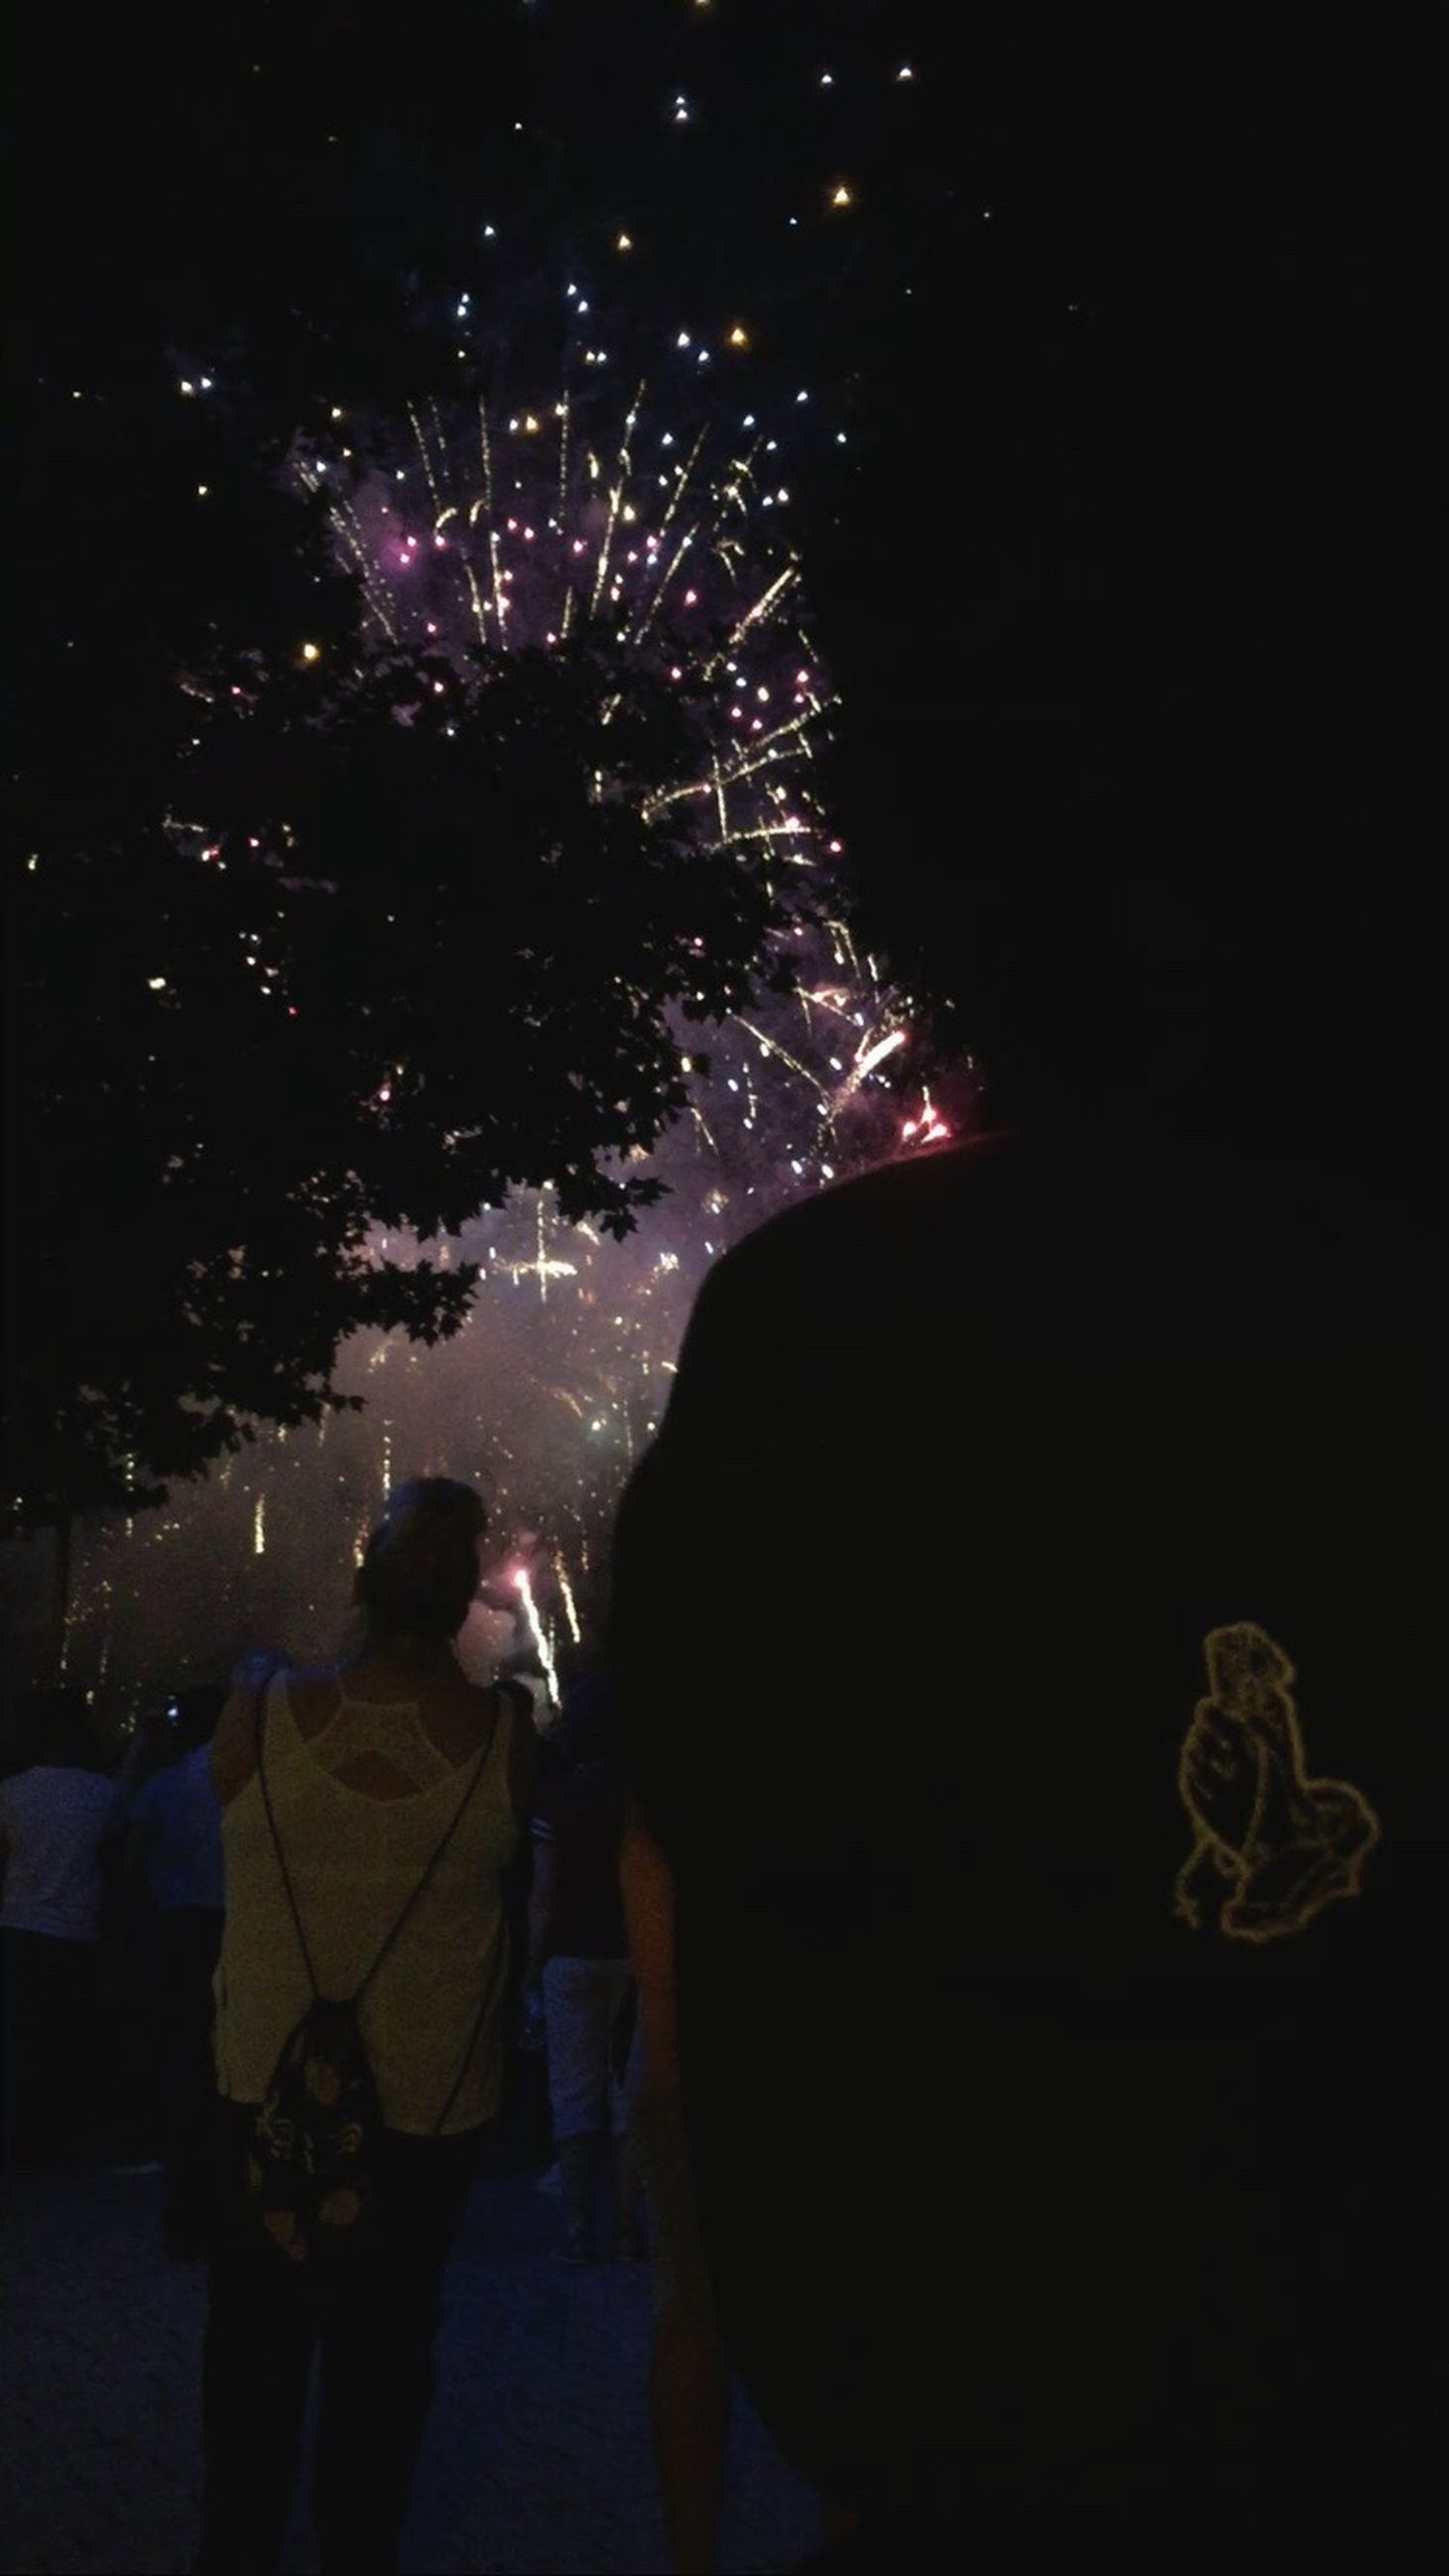 night, firework display, illuminated, exploding, rear view, celebration, real people, firework - man made object, men, standing, lifestyles, arts culture and entertainment, low angle view, outdoors, group of people, women, firework, sky, people, astronomy, adult